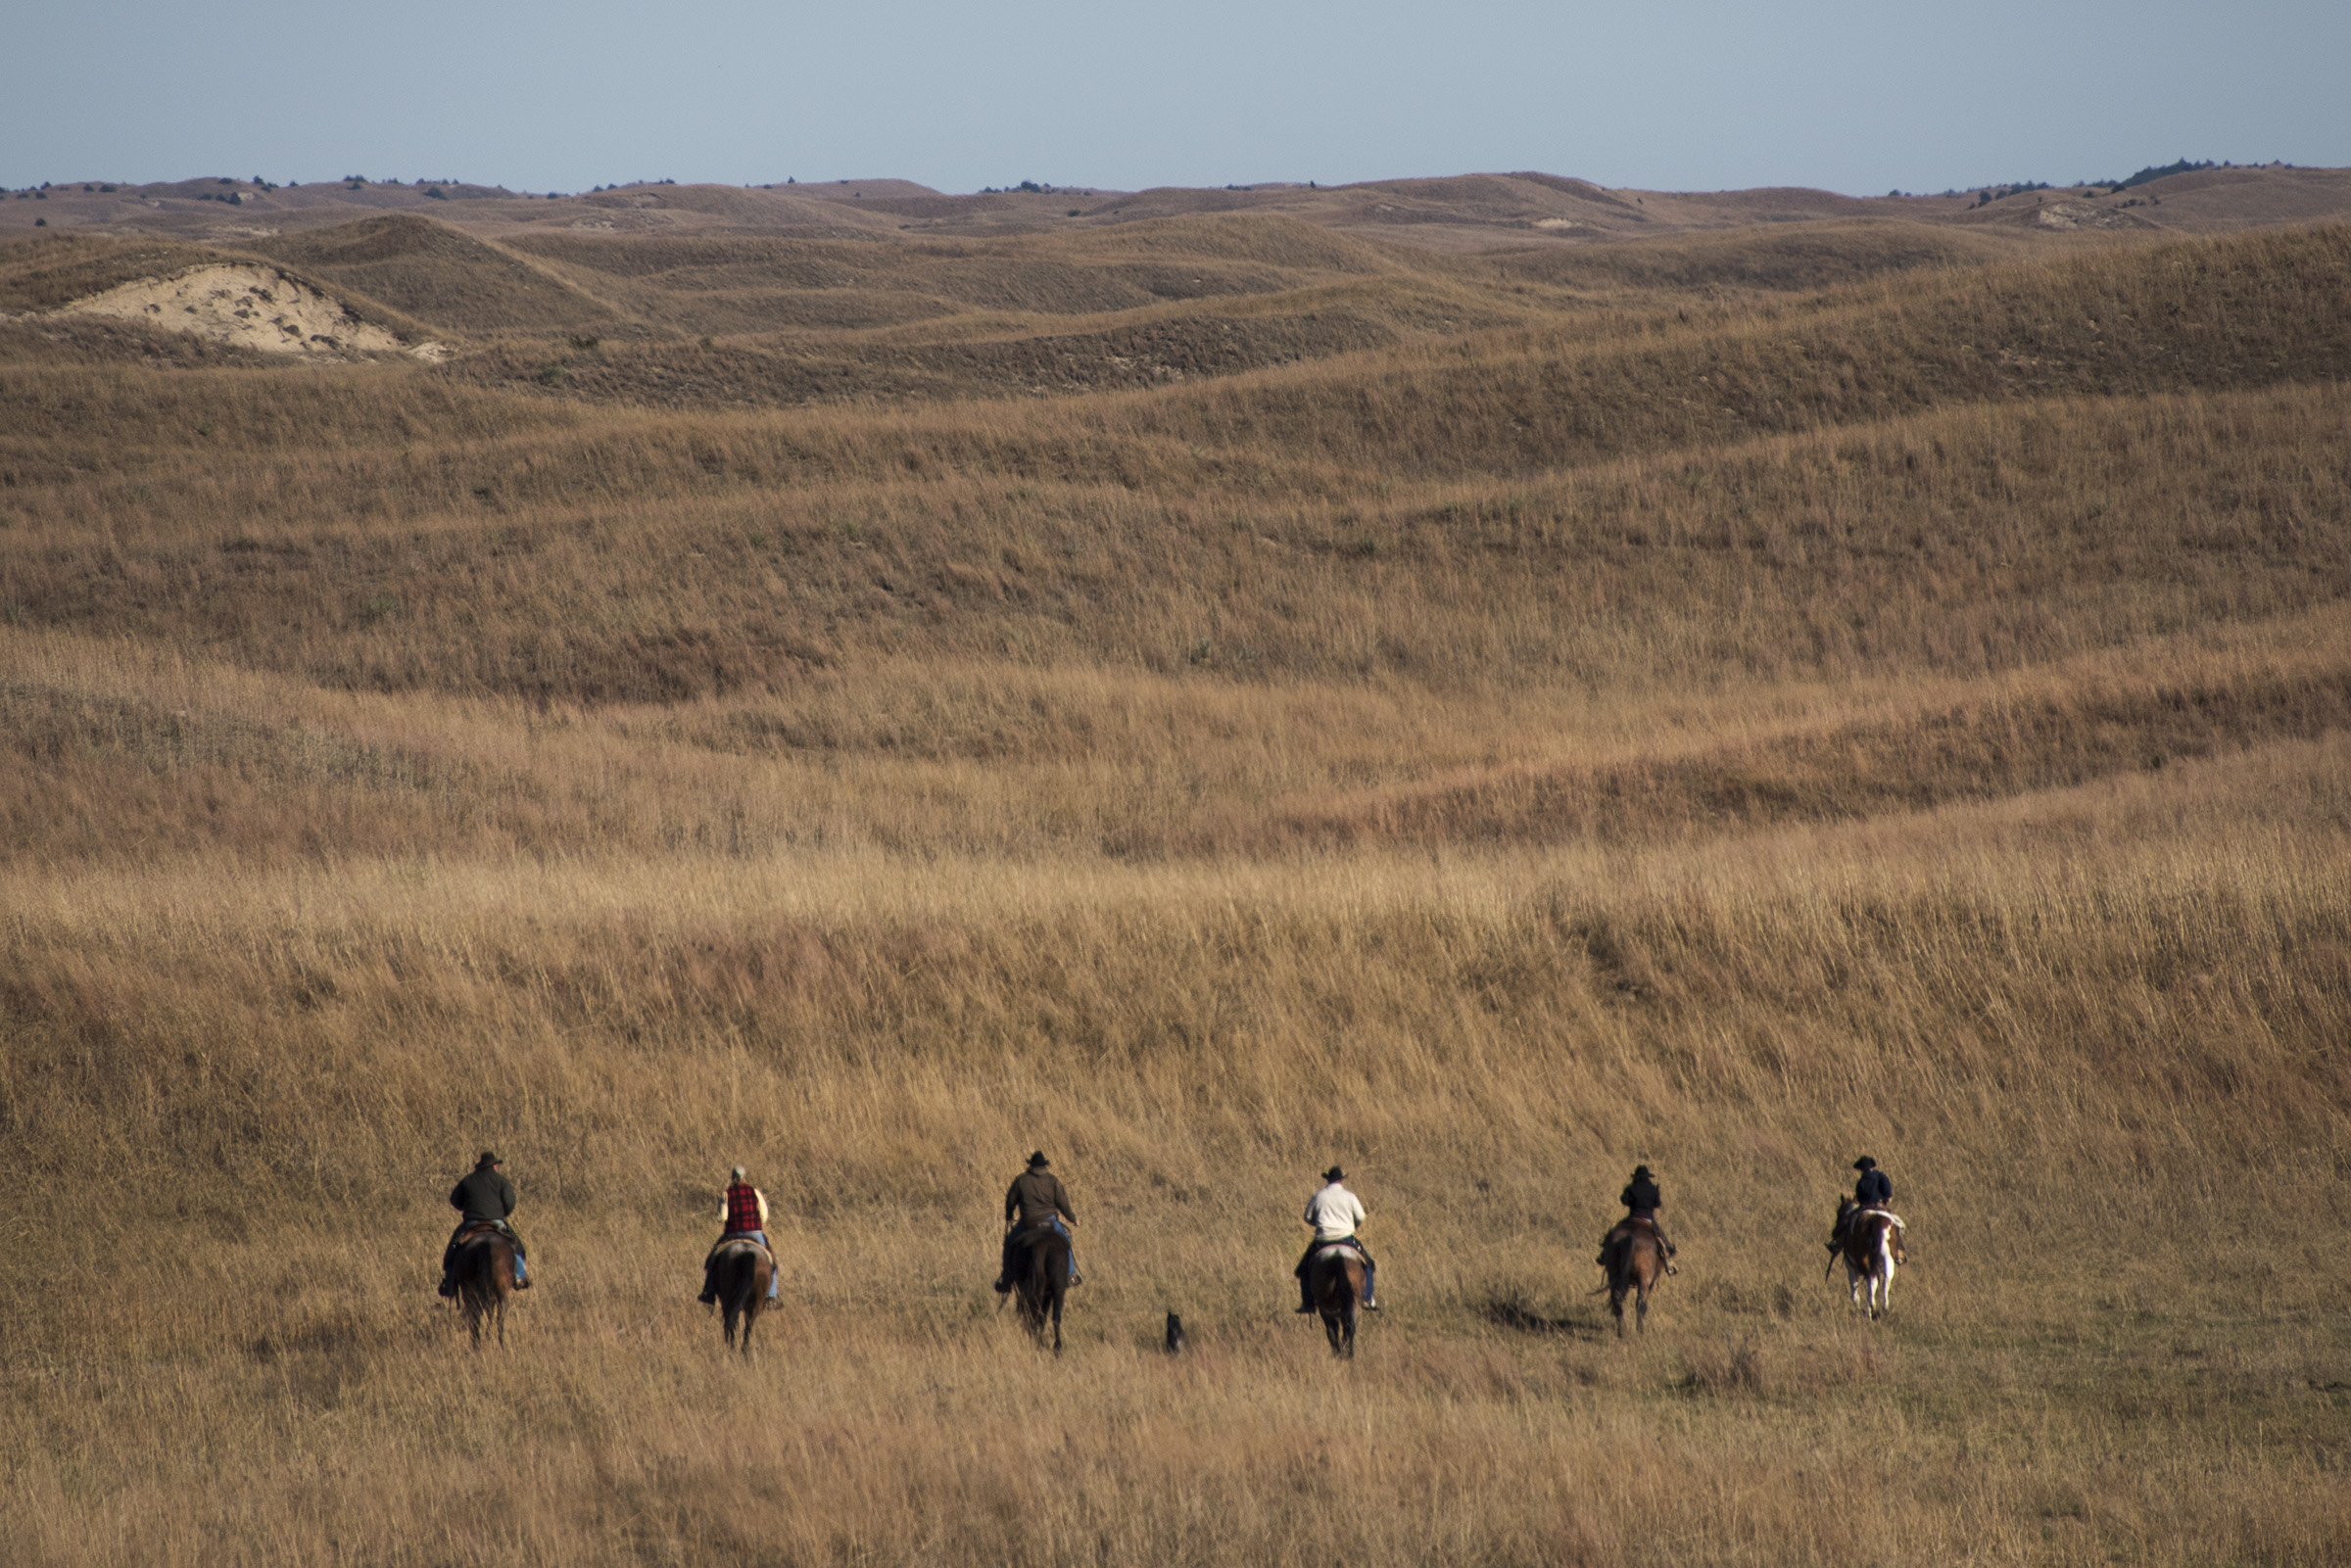 The Switzer family rides their horses through the Sandhills toward the herd of cattle. (Mariah Lundgren)